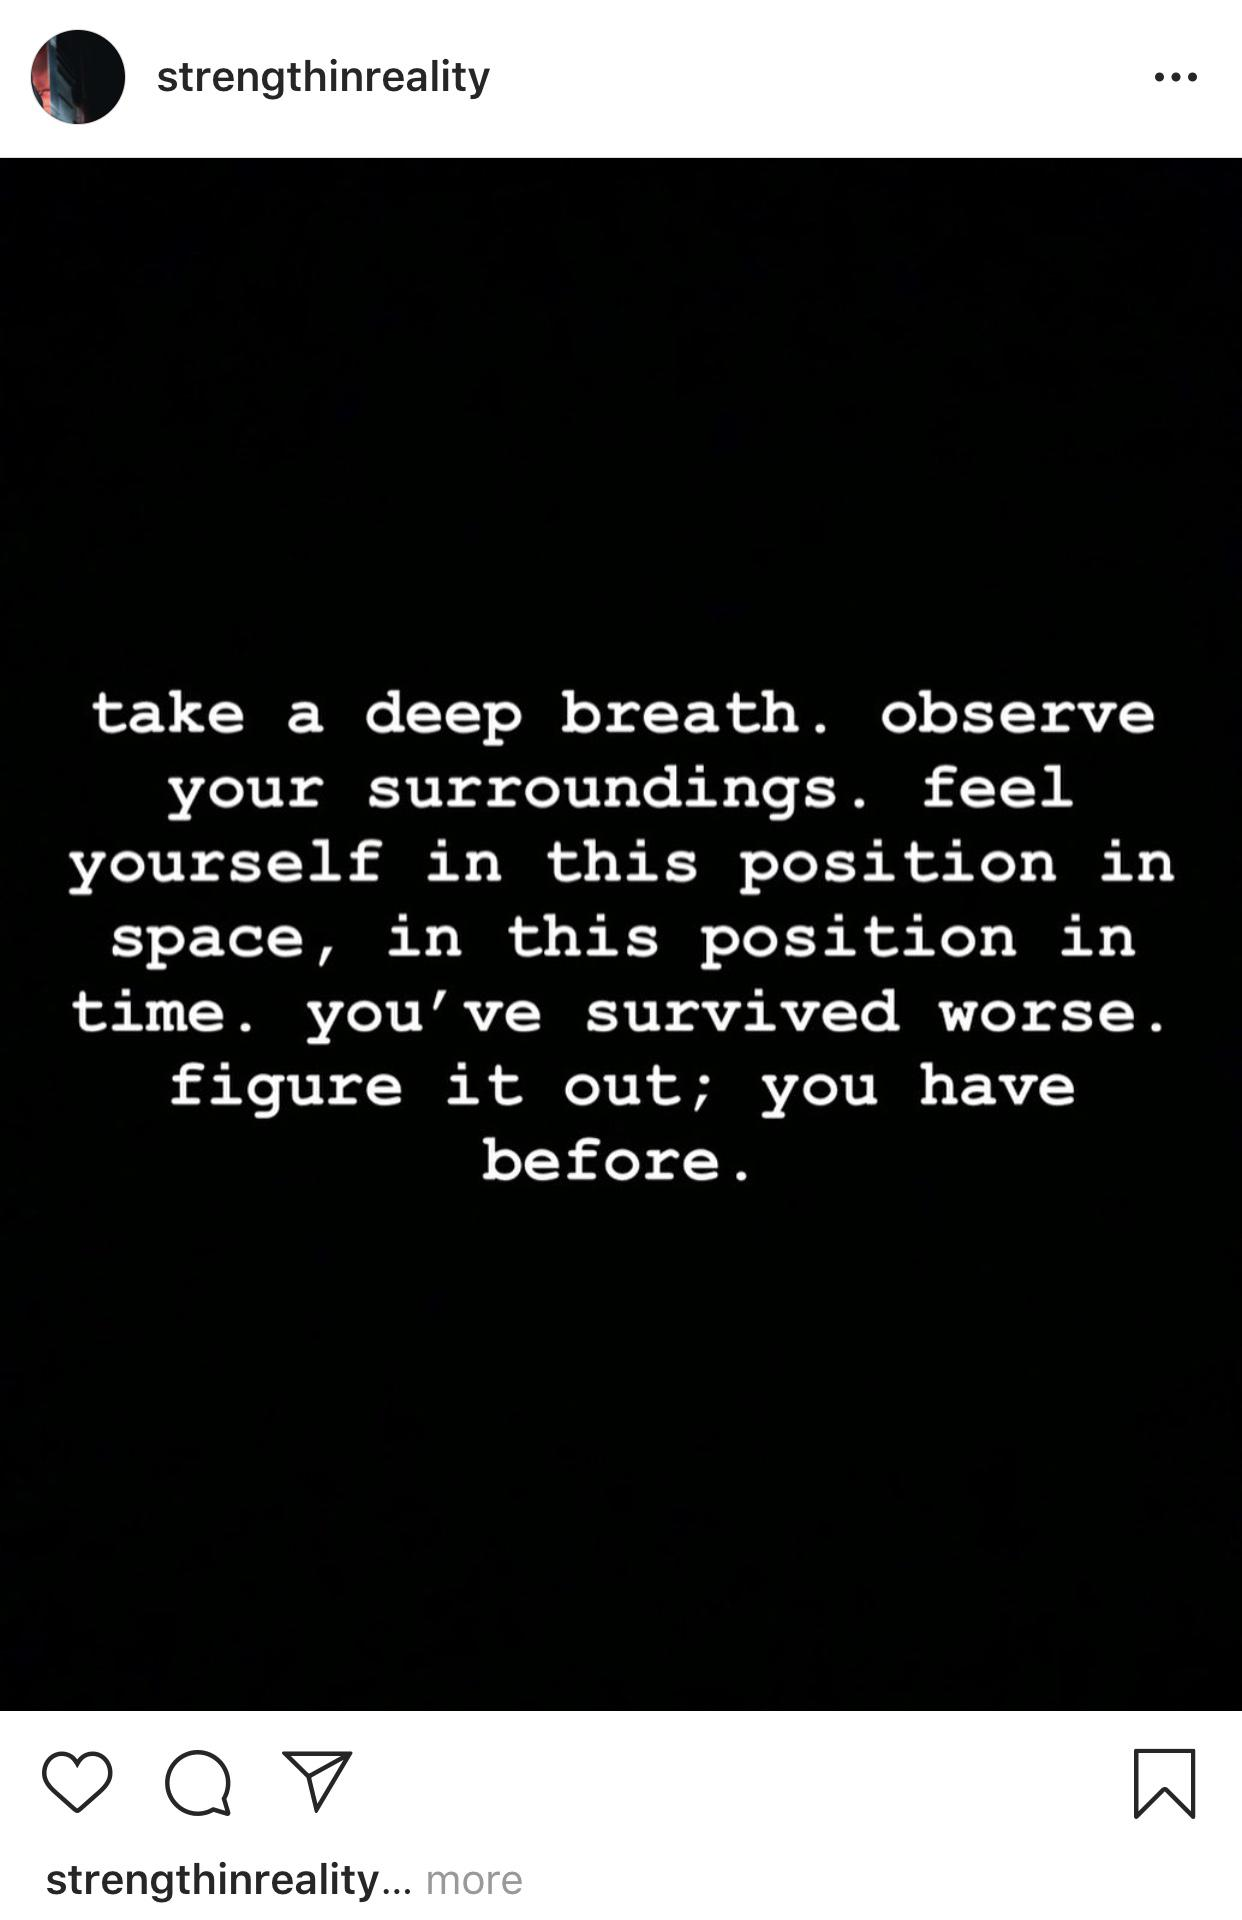 you got this. [image]